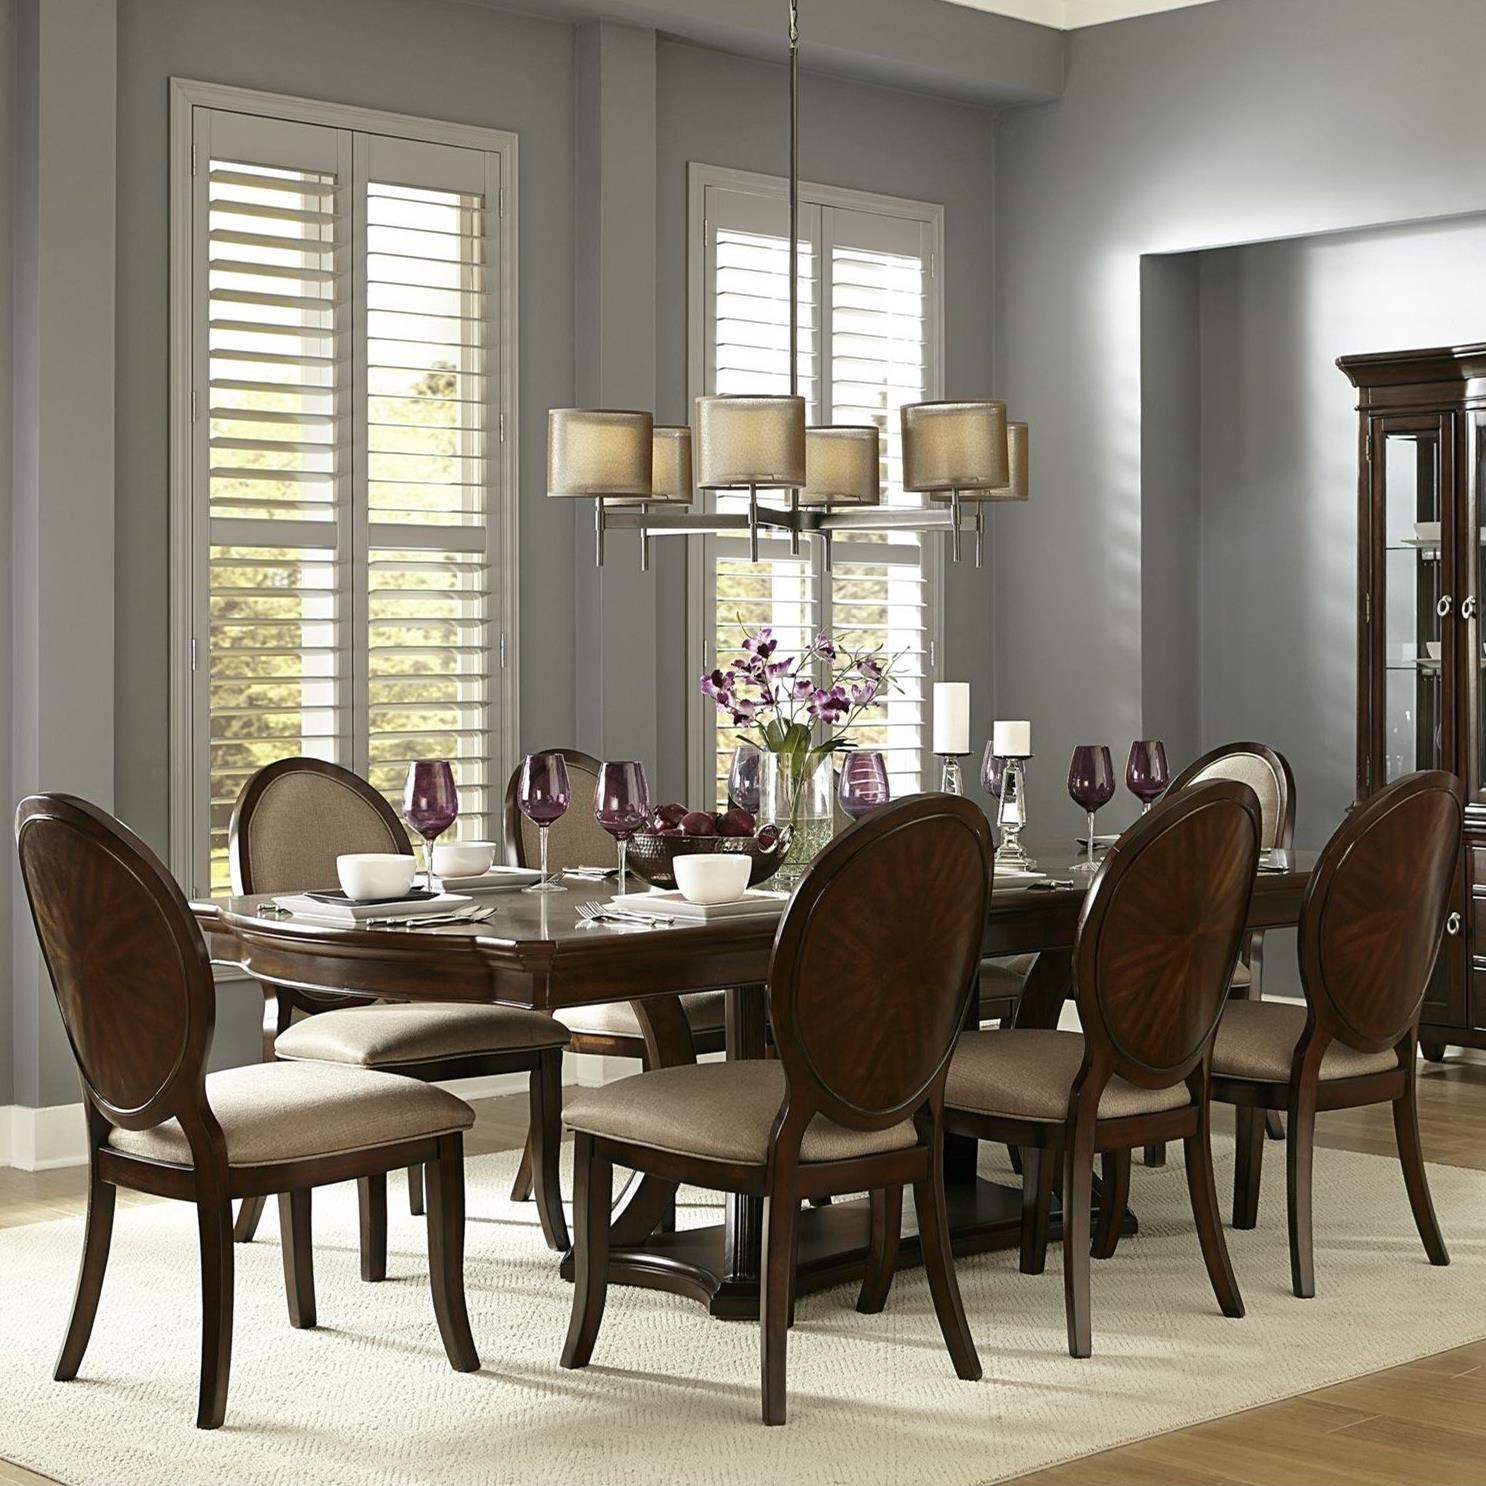 Nice Homelegance Delavan Transitional Dining Table And Chair Set   Hudsonu0027s  Furniture   Dining 7 (or More) Piece Sets